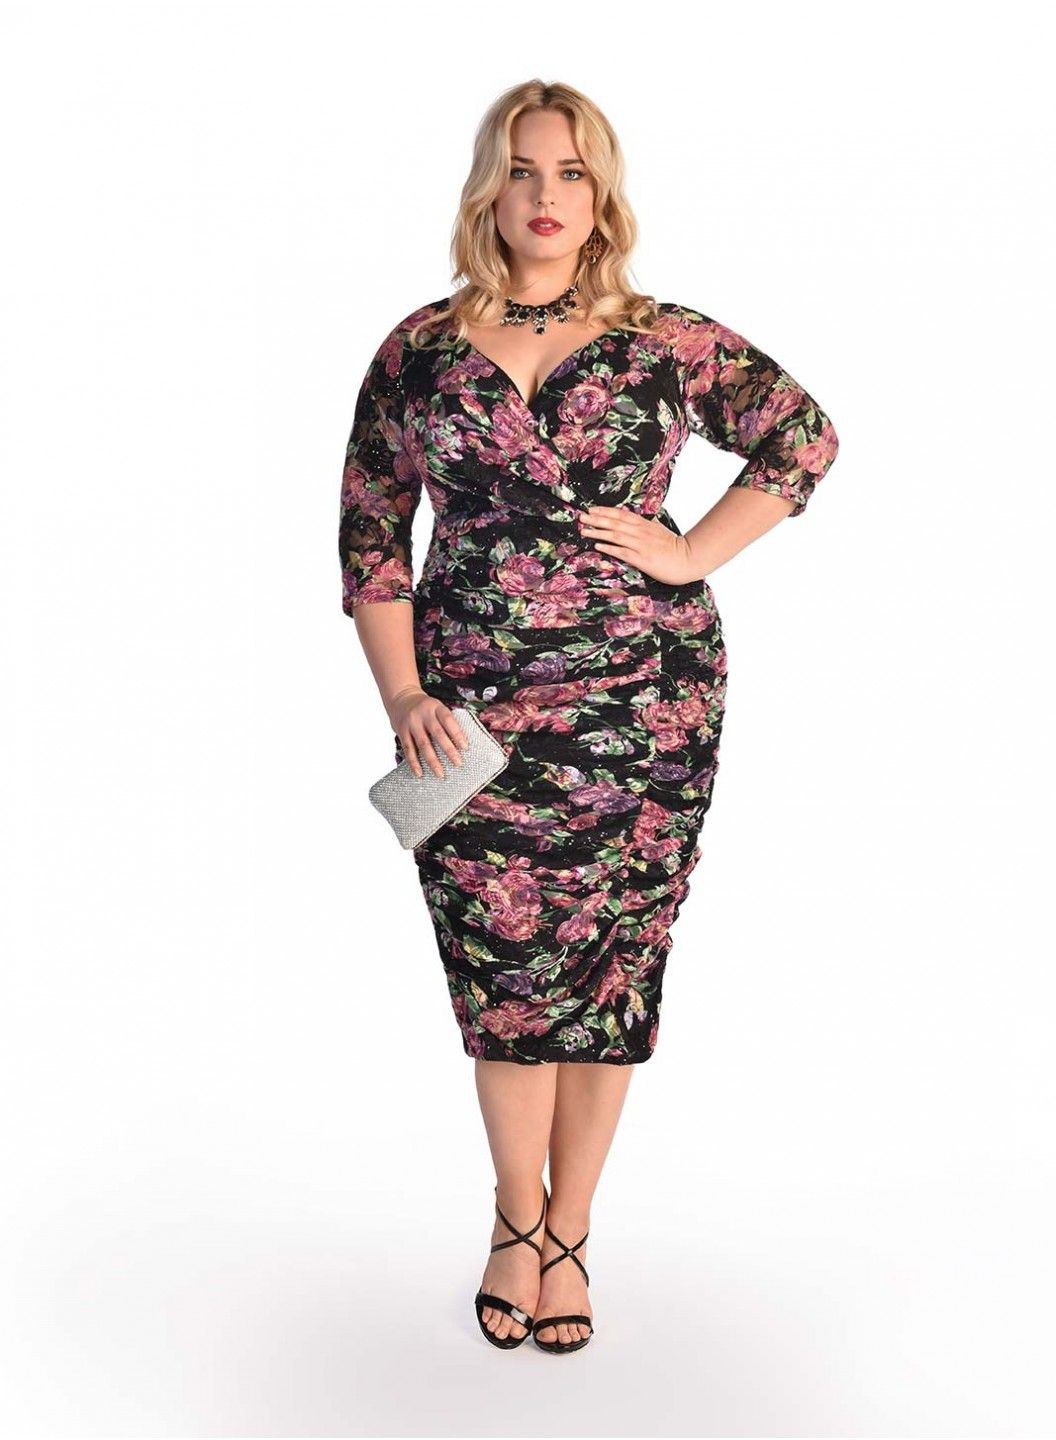 Phillippa Dress In Floral Print Model Wearing Size 12 Height 5 8 Shape Hourglass Plus Size Outfits Plus Size Fashion Dresses [ 1440 x 1056 Pixel ]